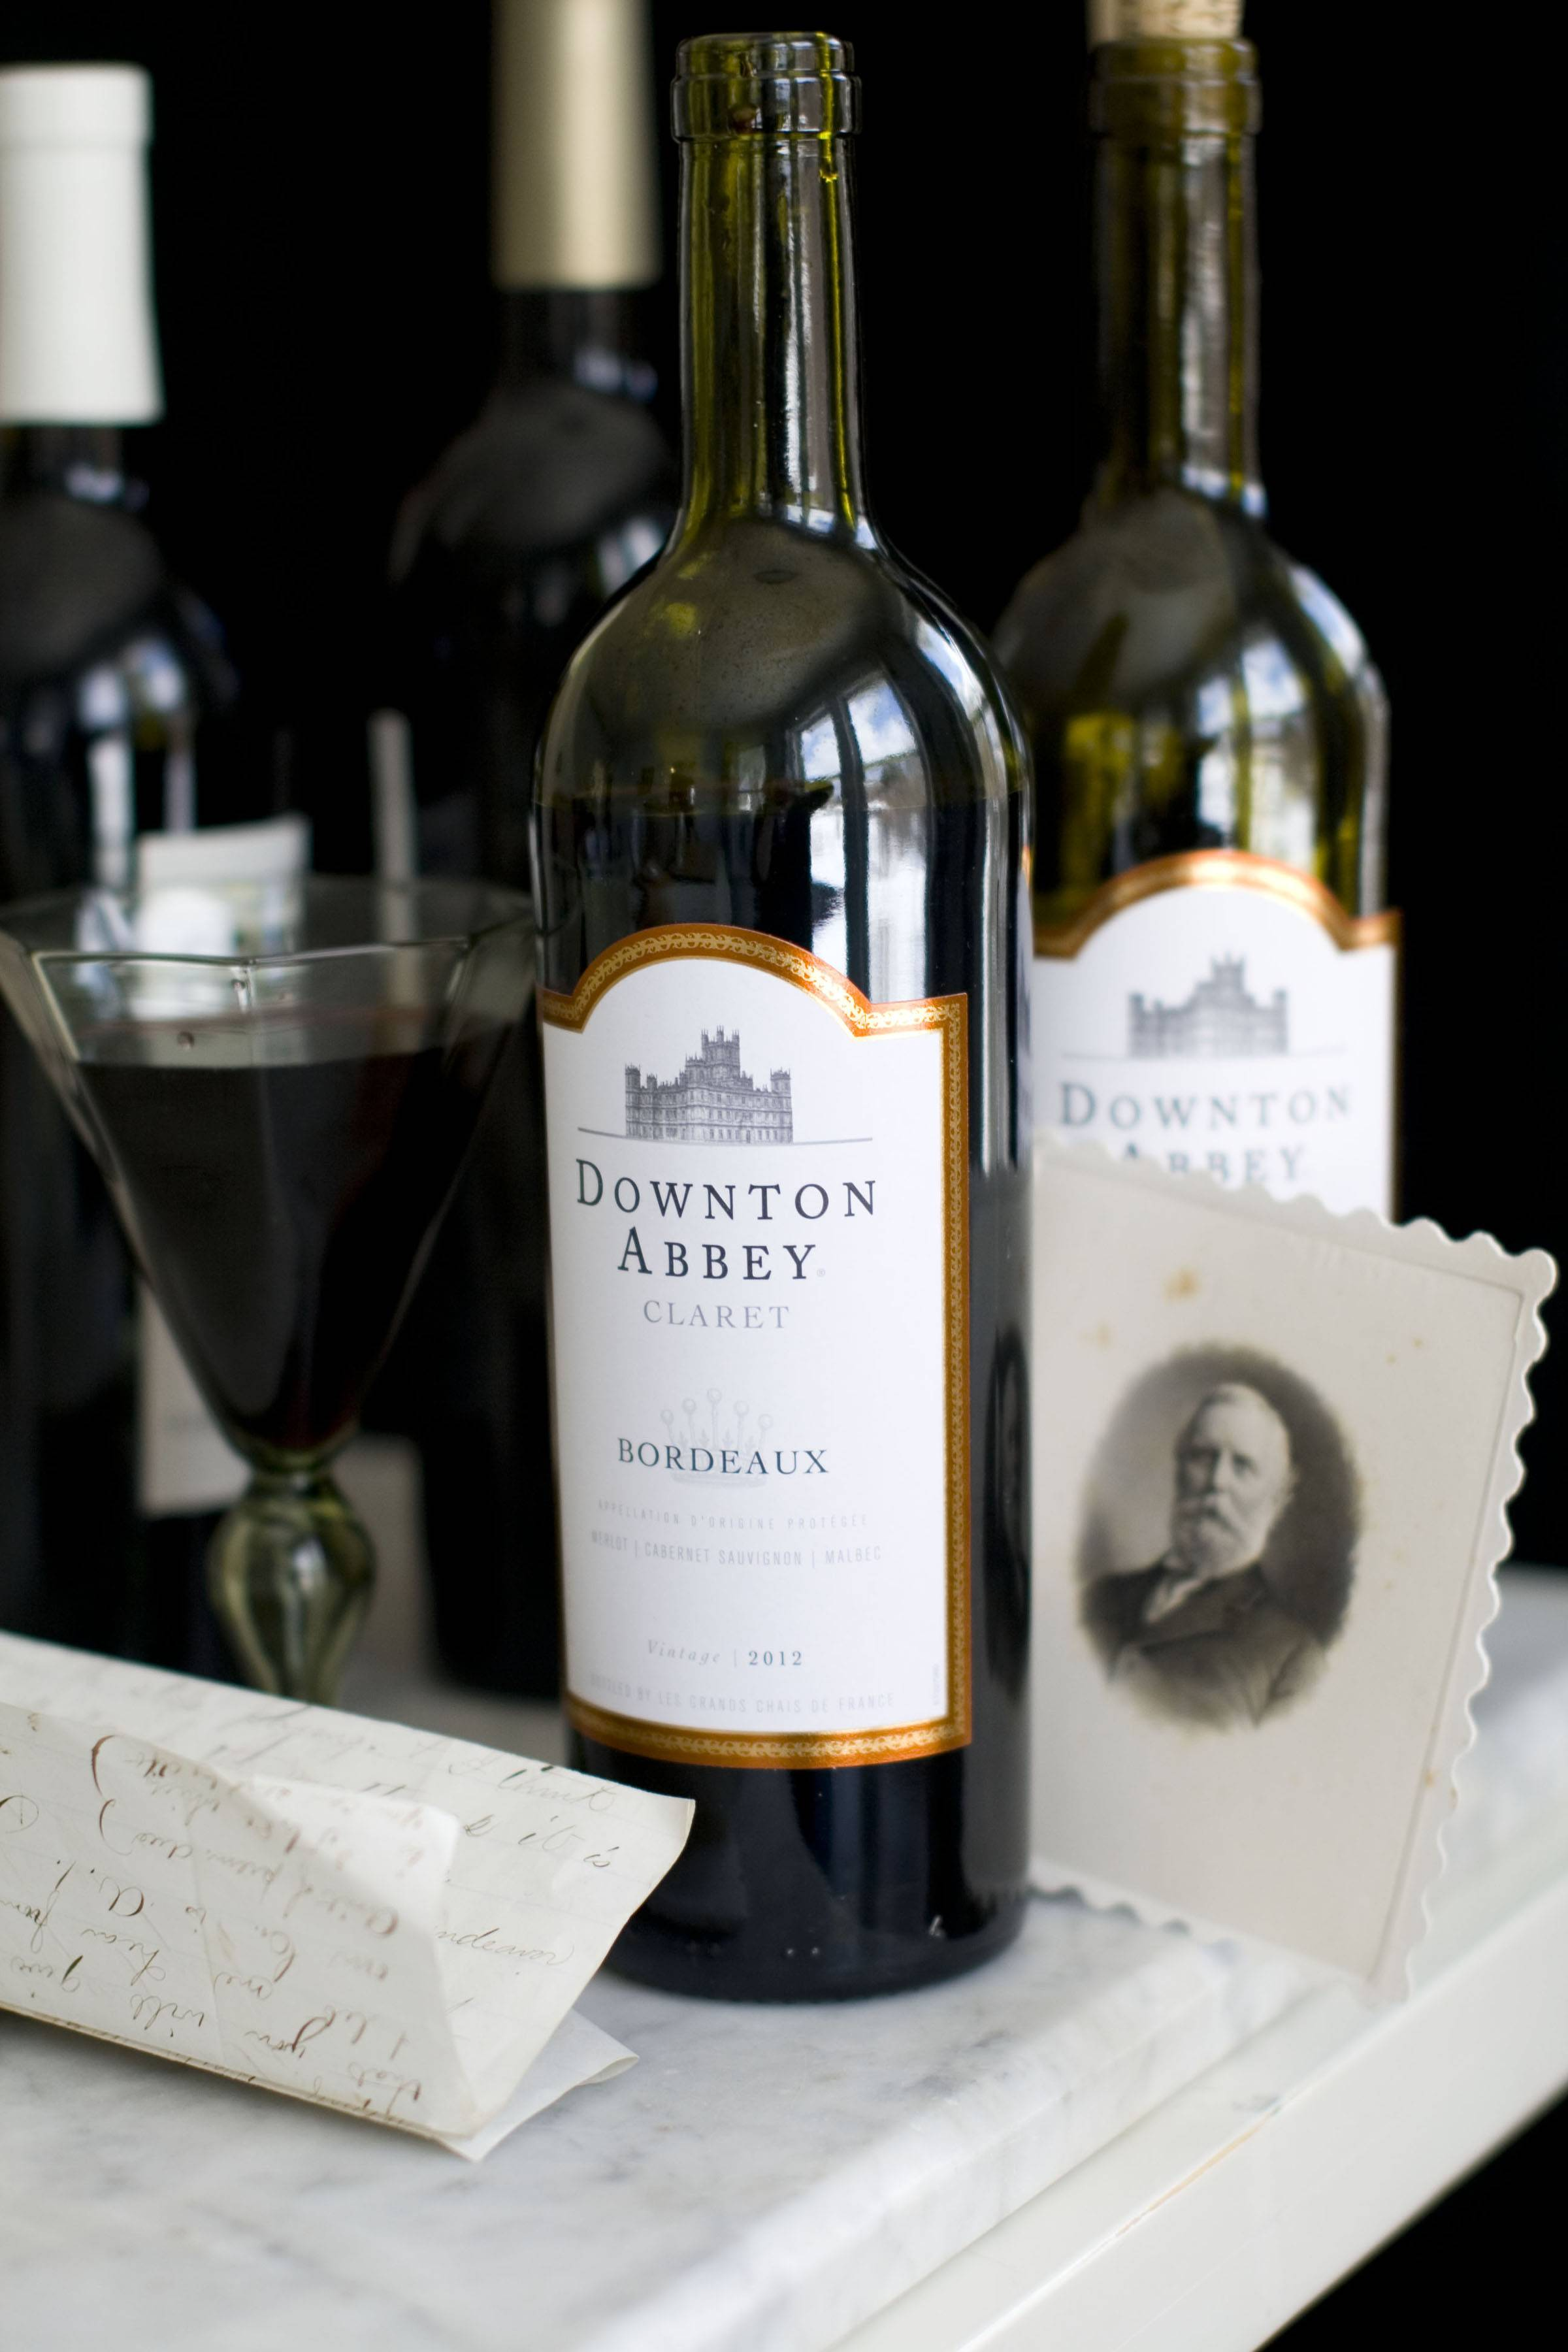 Yes, there is a Downton Abbey wine.